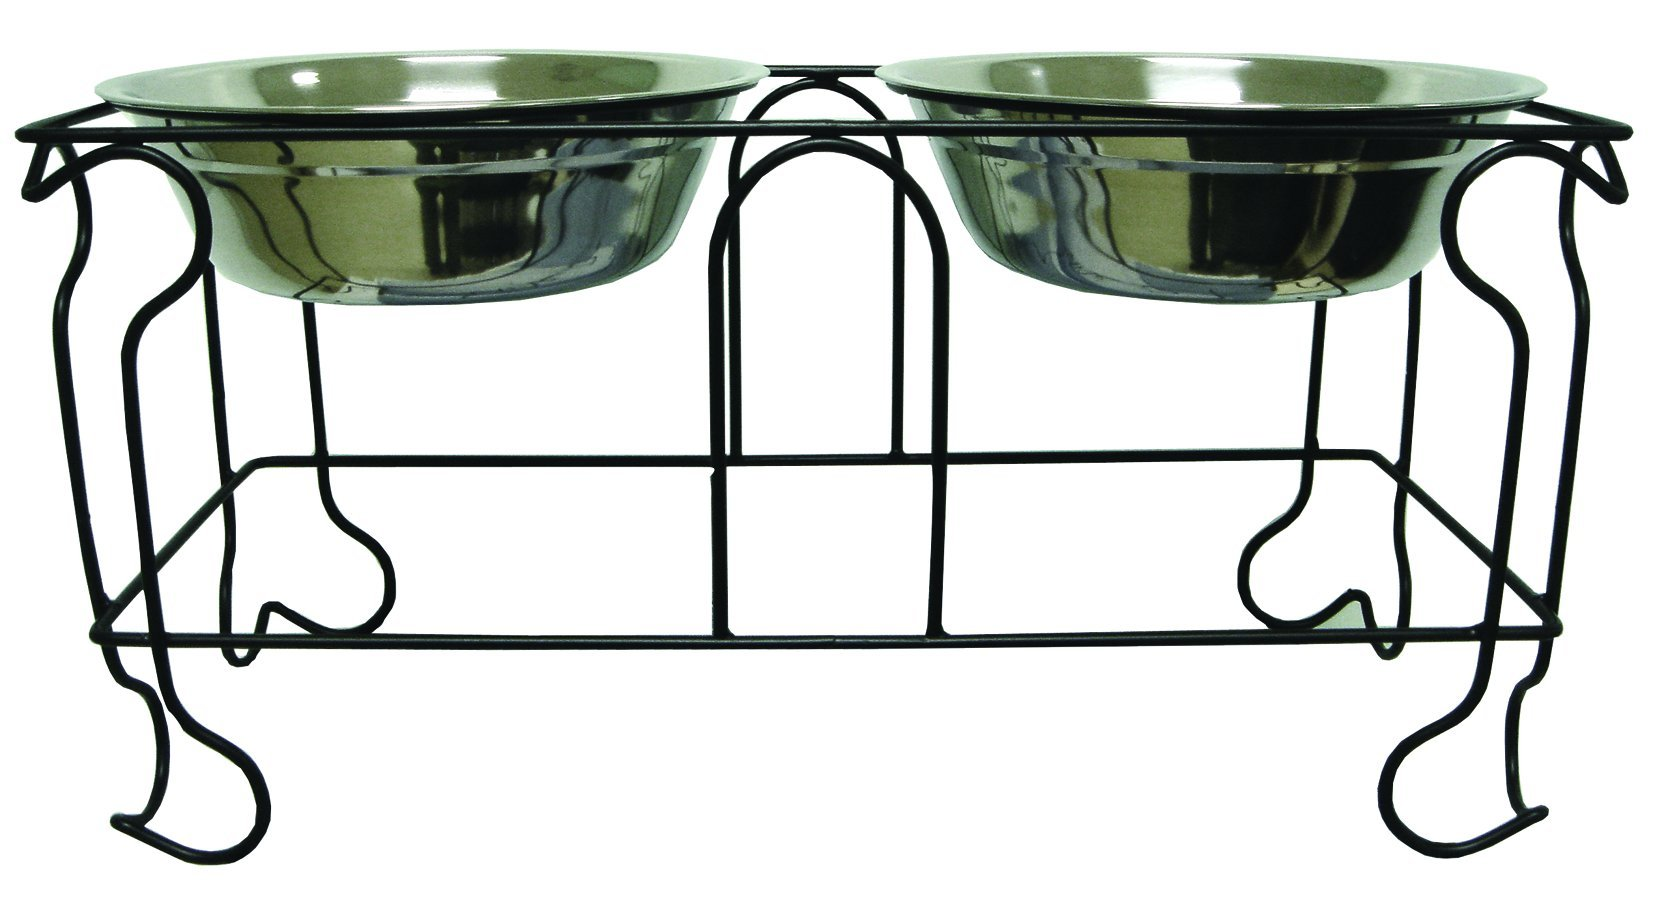 YML 10-Inch Wrought Iron Stand with Double Stainless Steel Feeder Bowls